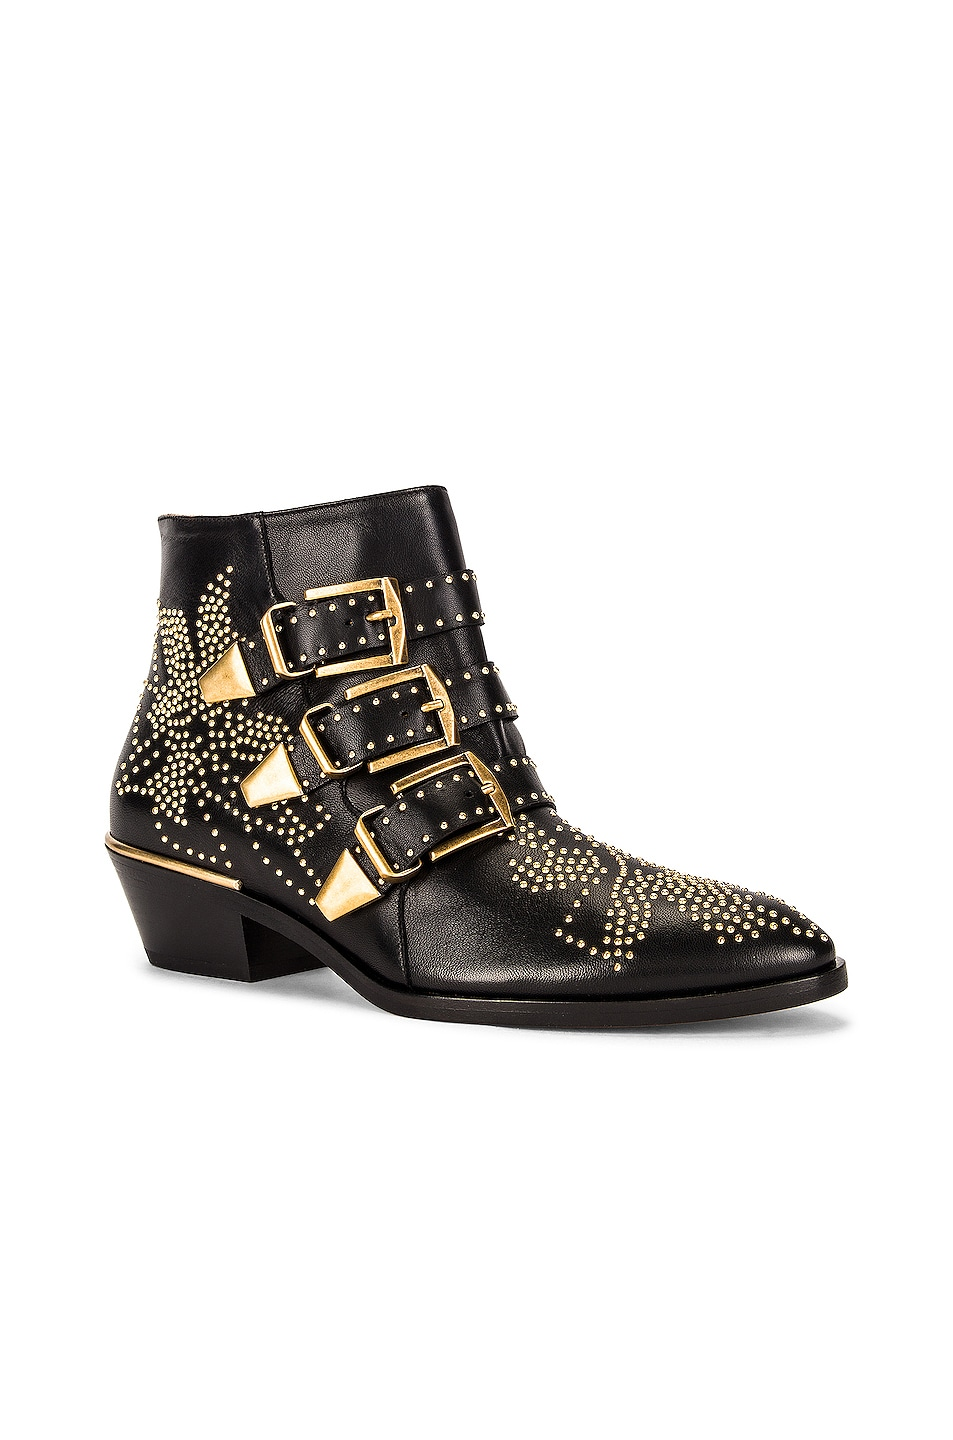 Image 2 of Chloe Susanna Leather Studded Booties in Black